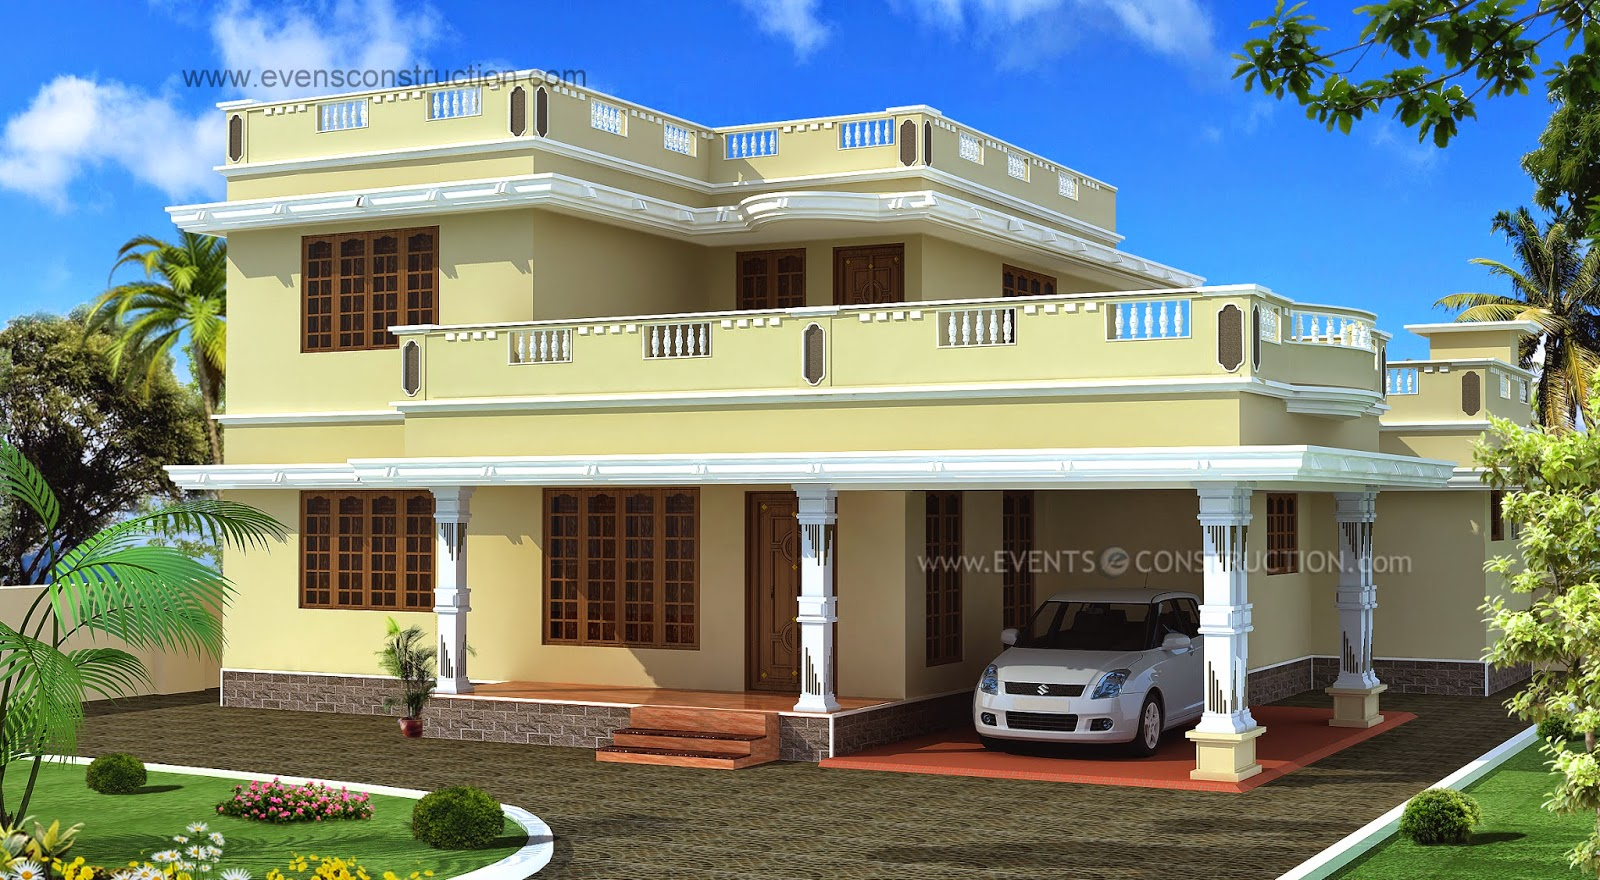 Evens Construction Pvt Ltd Flat Roof House Exterior In